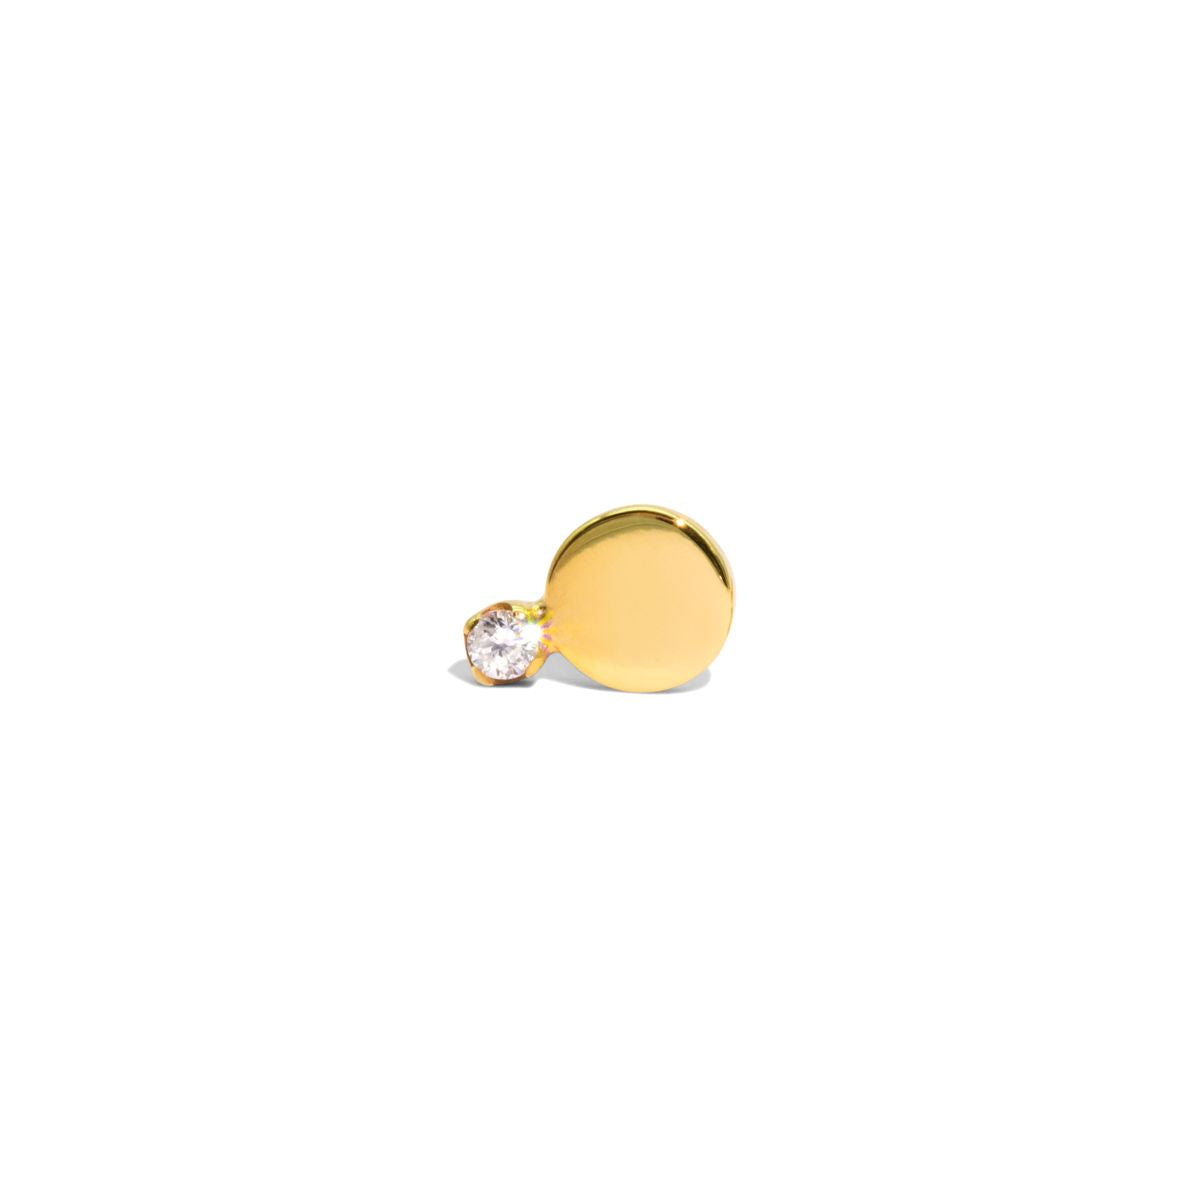 The Single Gold Diamond Horizon Stud Earring